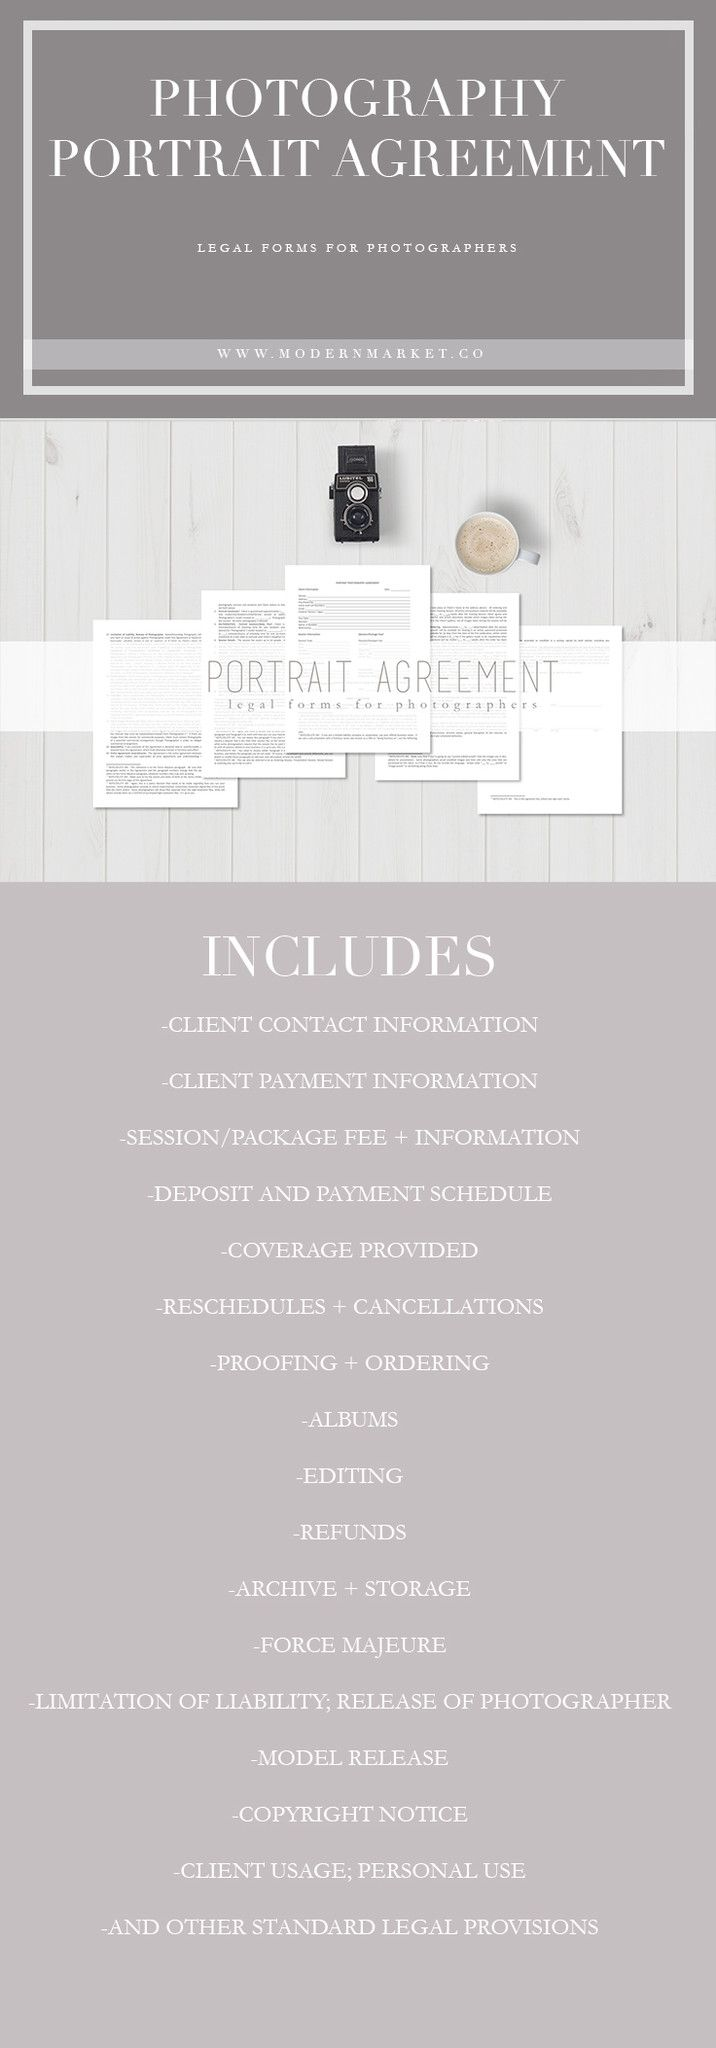 Portrait Agreement  Legal Forms For Photographers  Business